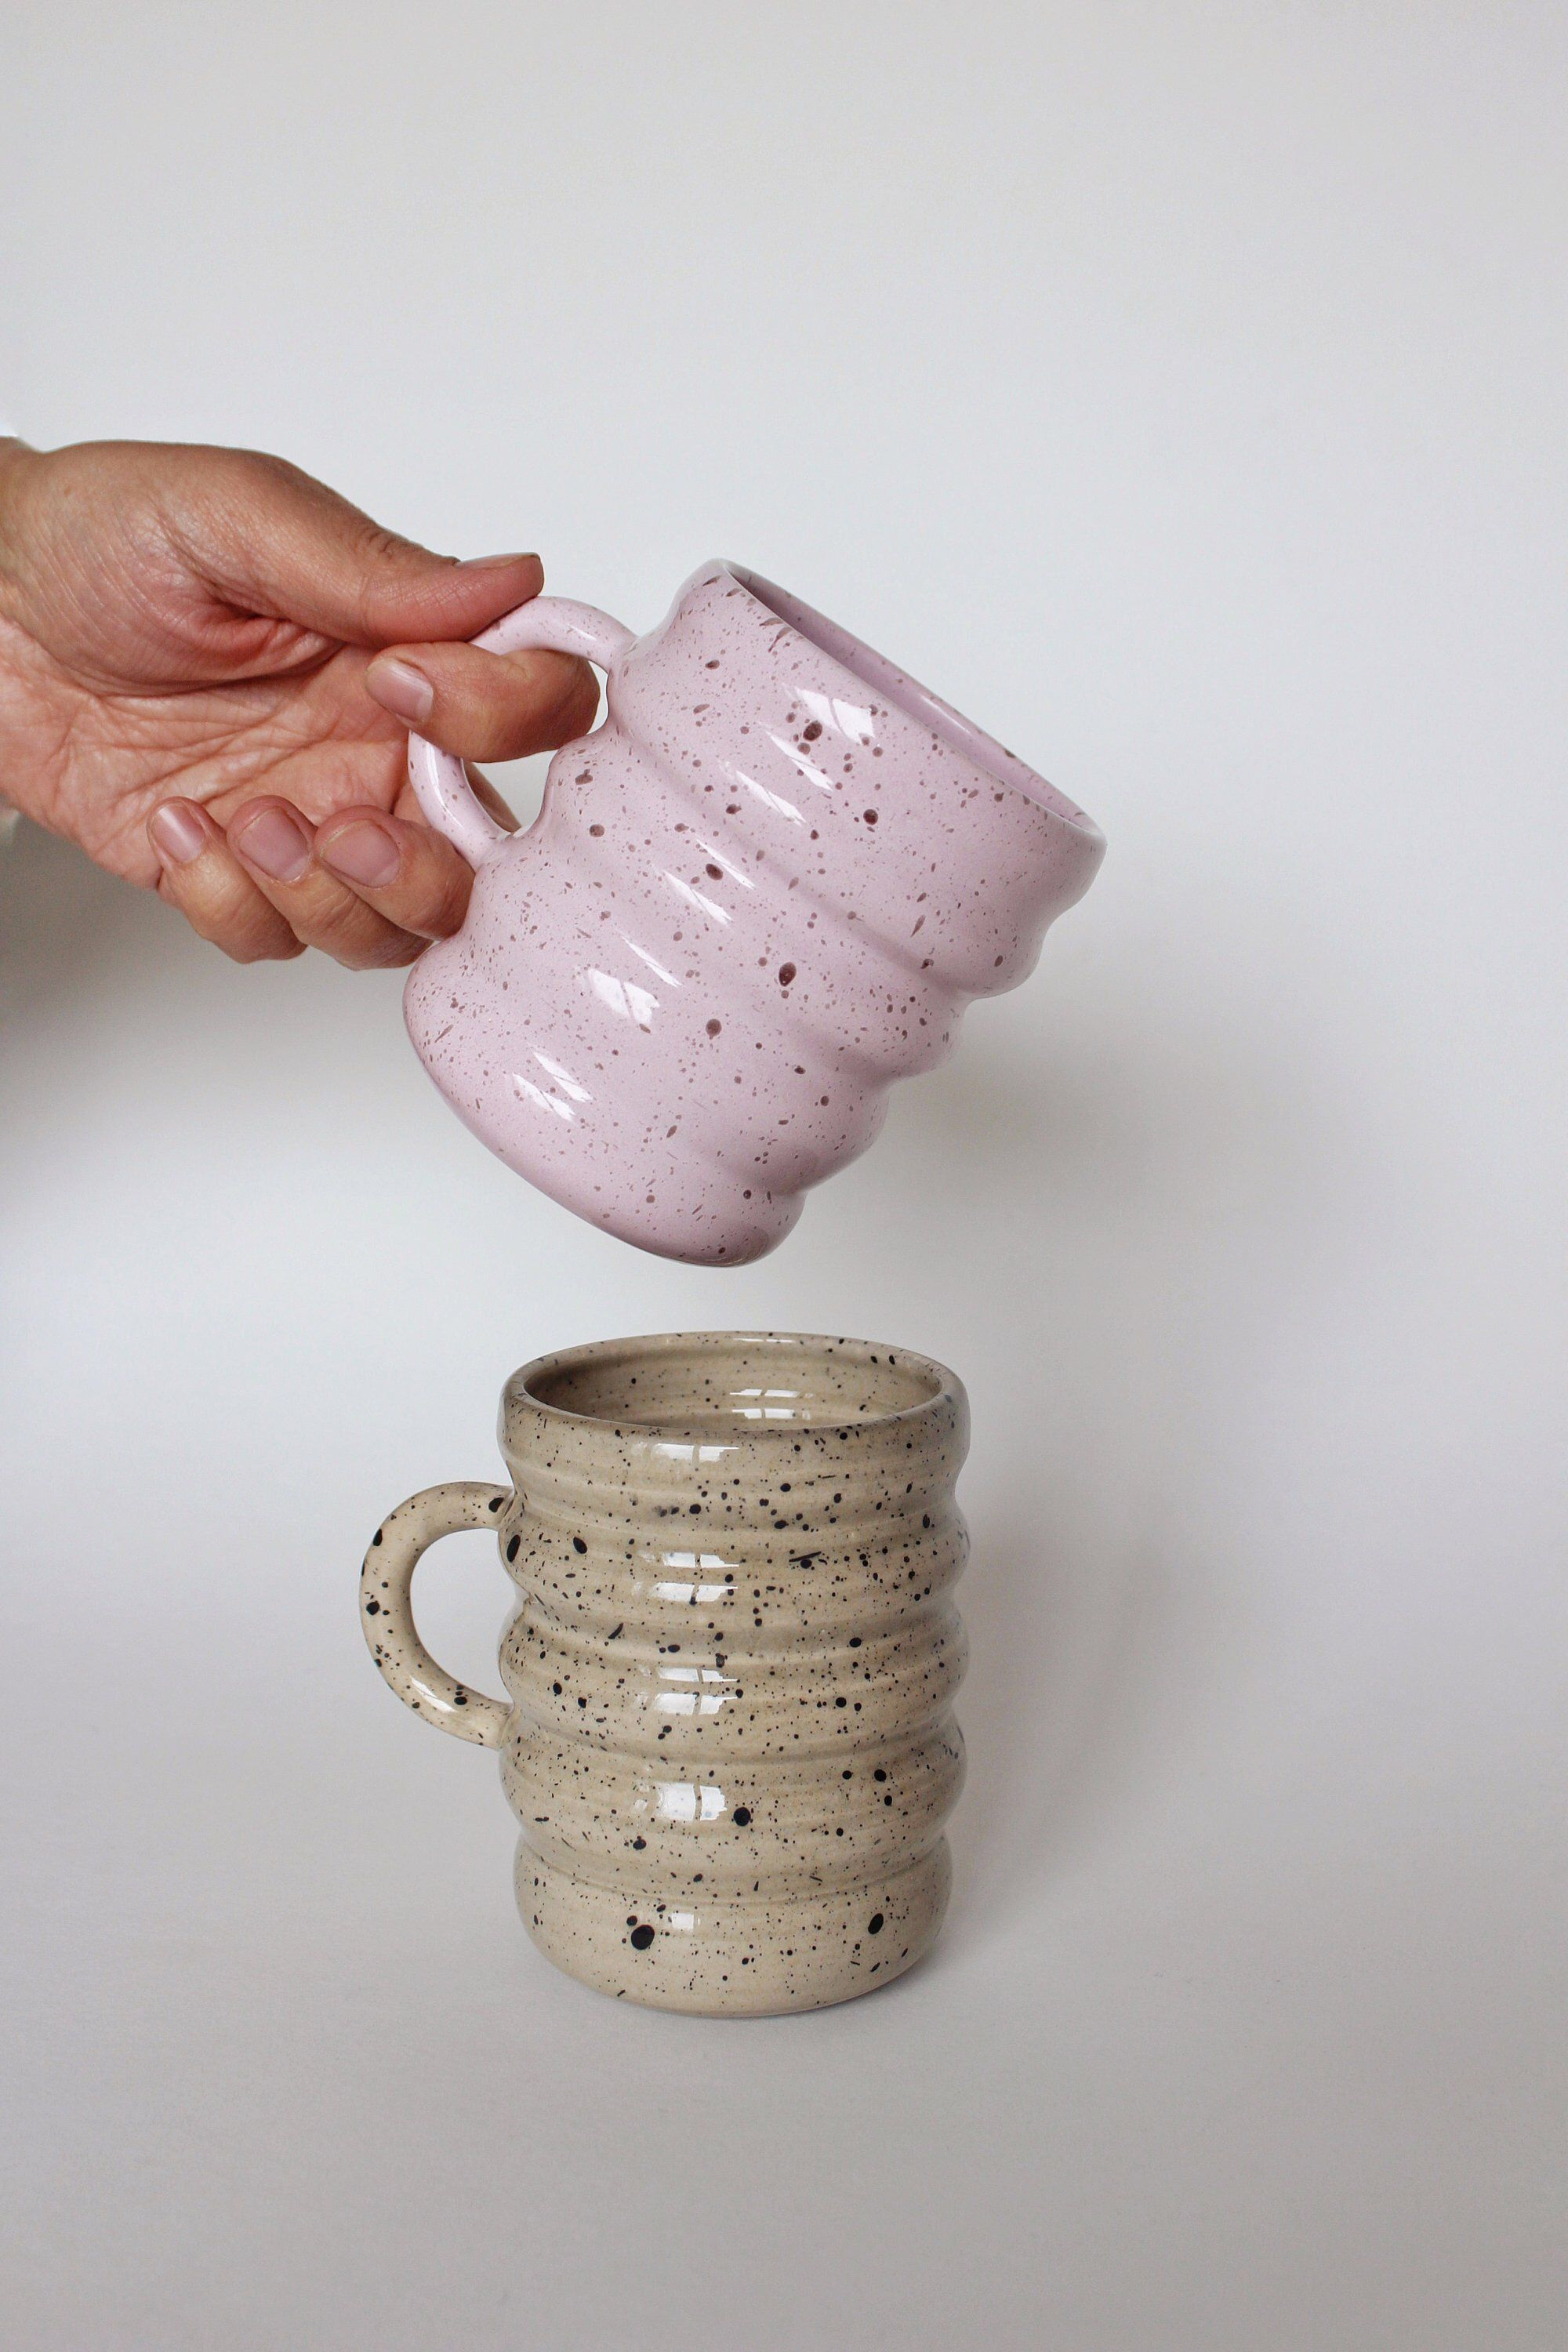 Large pottery pink coffee mug, Handmade pottery mugs, Ceramic coffee mug, Stoneware coffee mug, Unique coffee cup, Tea cup, Coffee gift #coffeecup